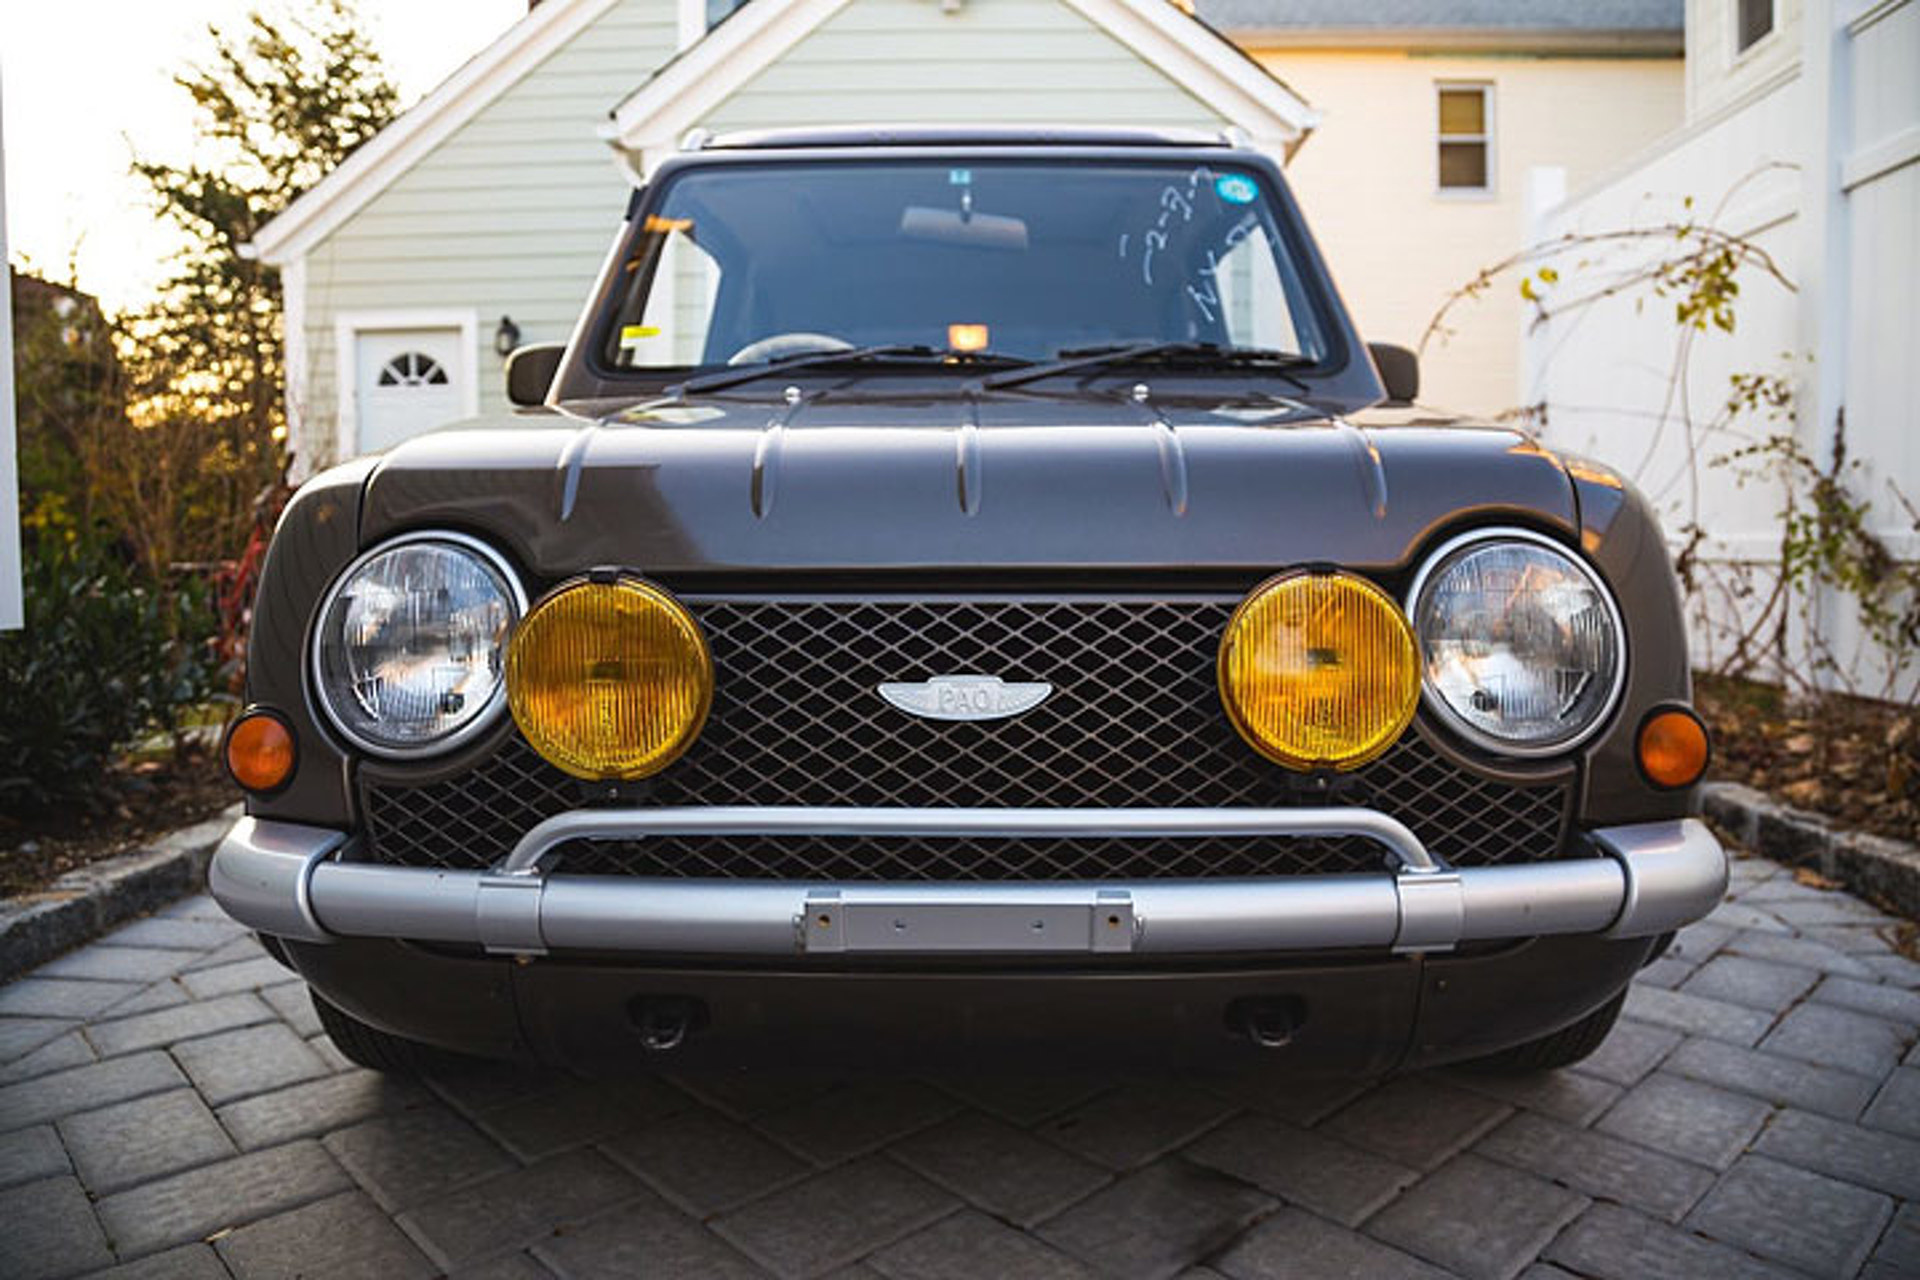 Own This 1989 Nissan Pao That Was \'Retro\' Before it Was Cool